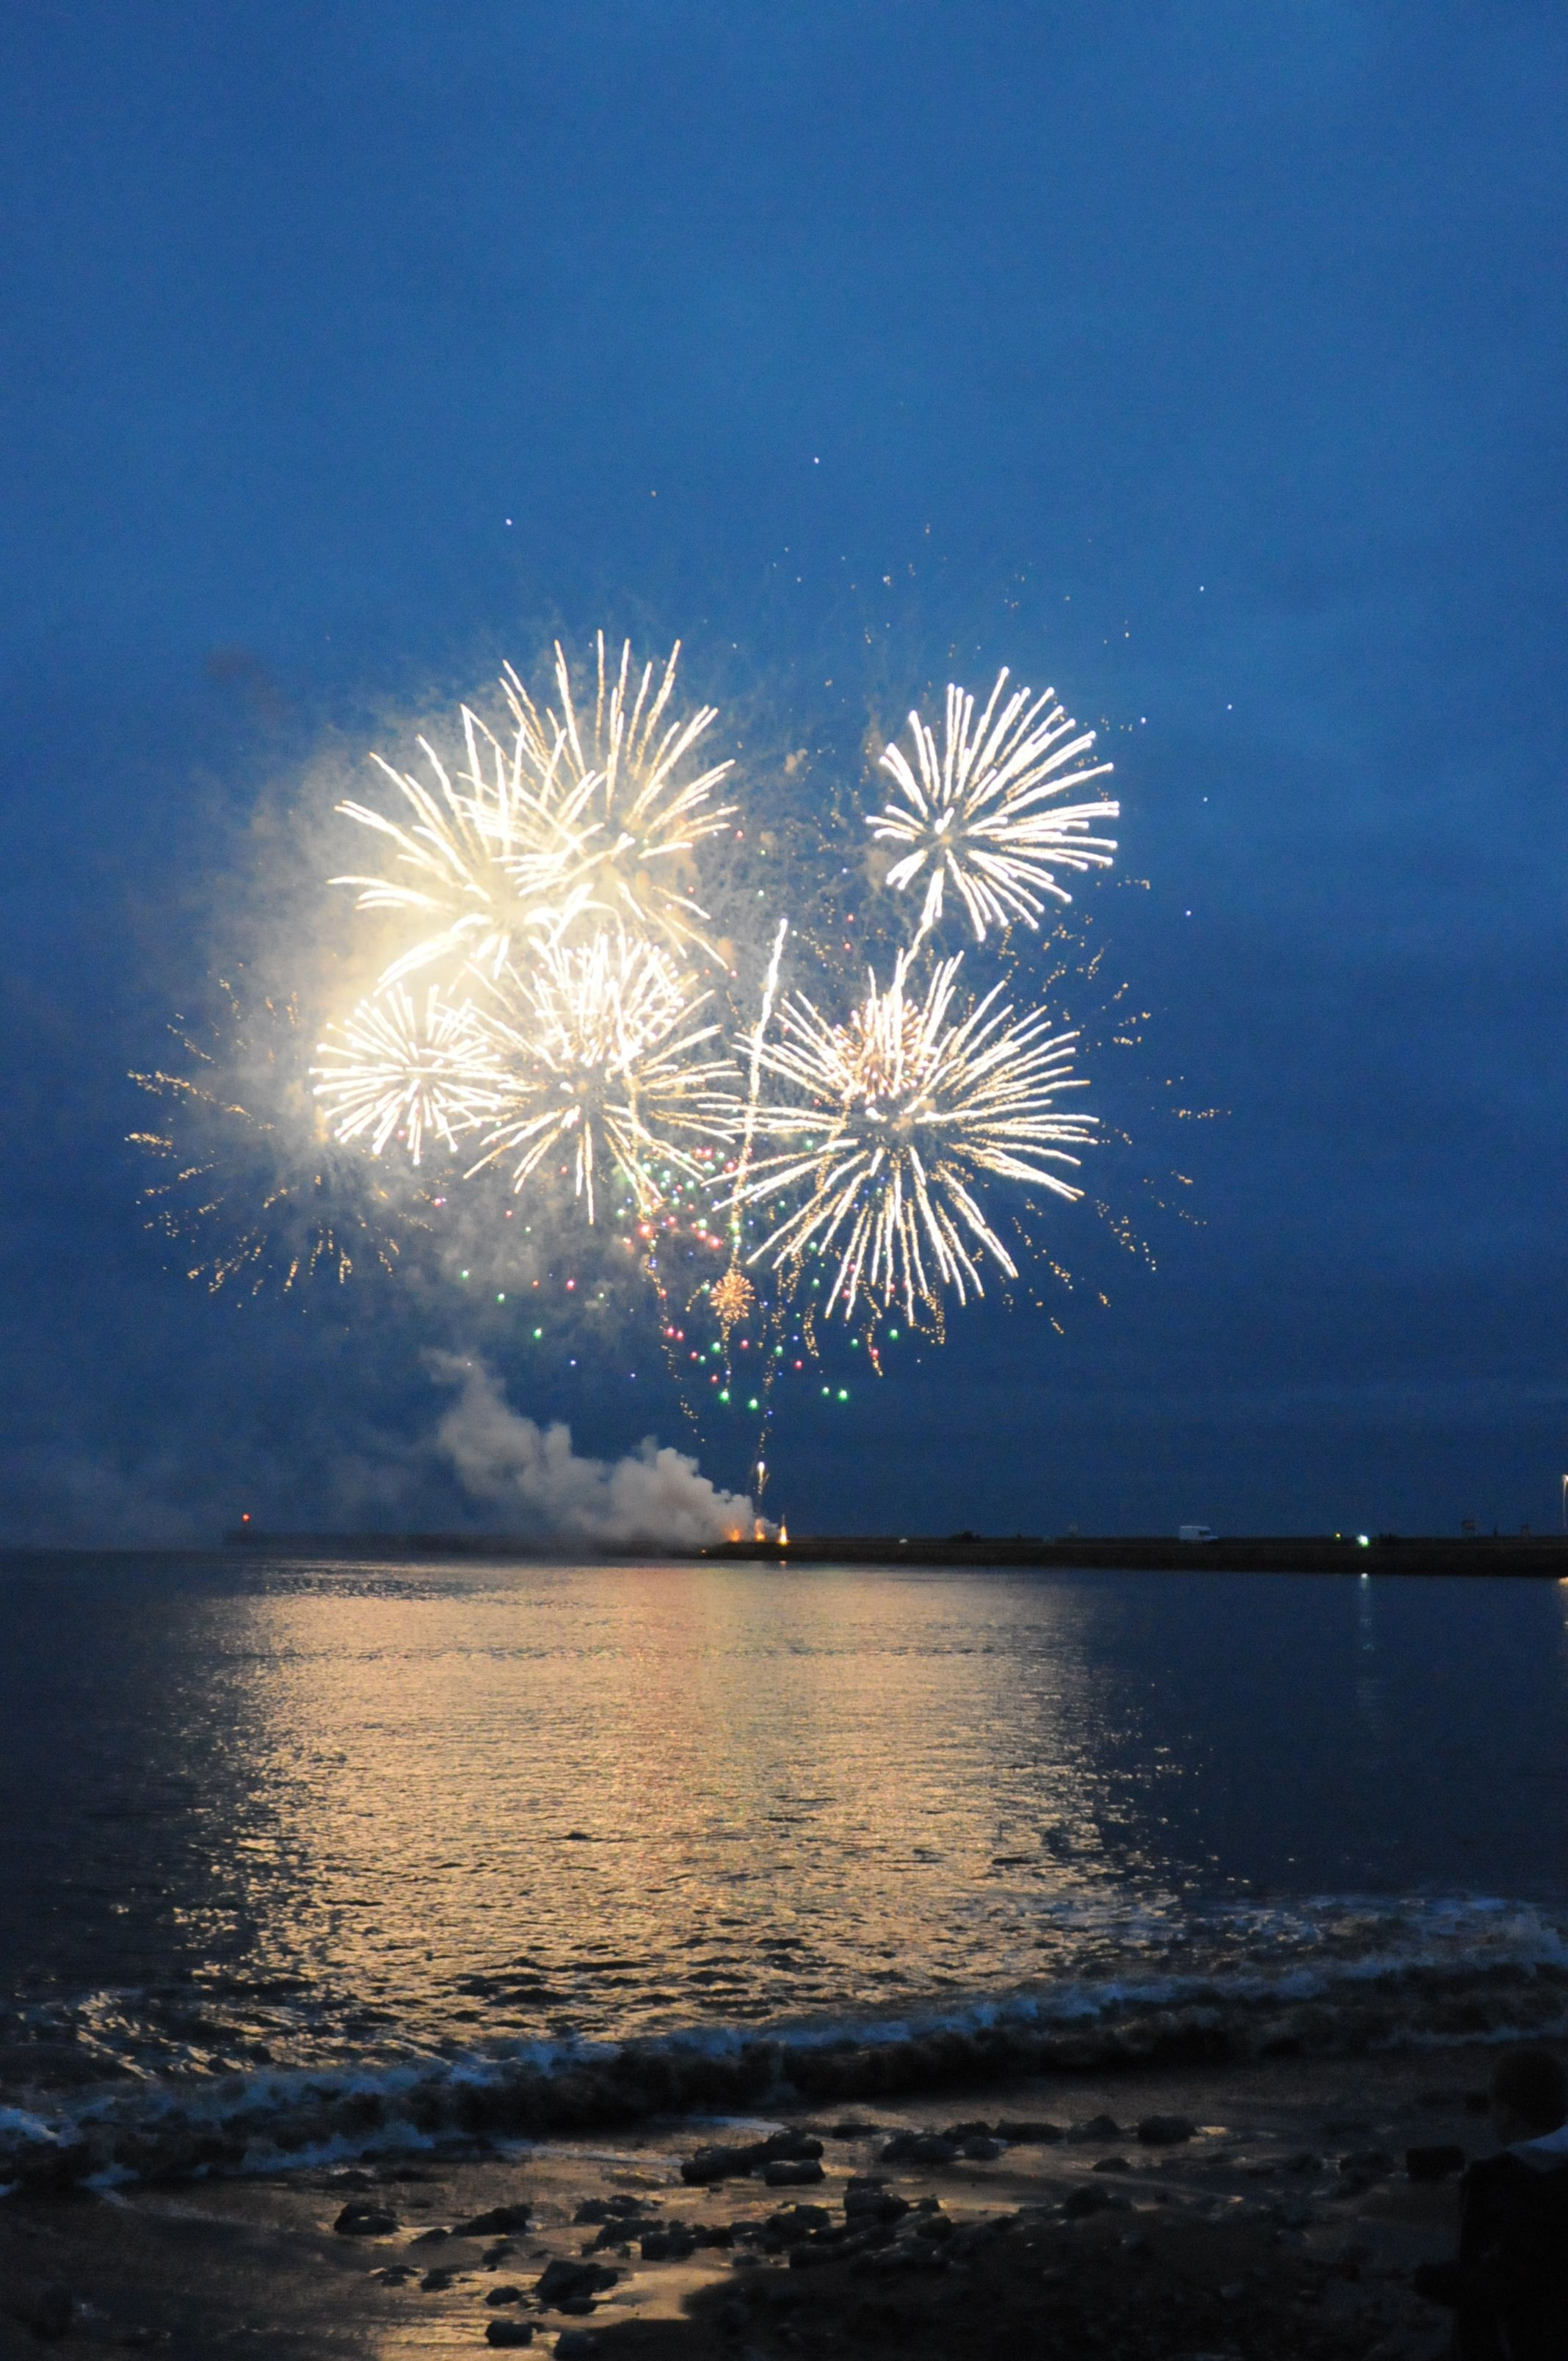 Fireworks over the Sea to celebrate the opening of Littlehaven Promenade and Sea Wall.